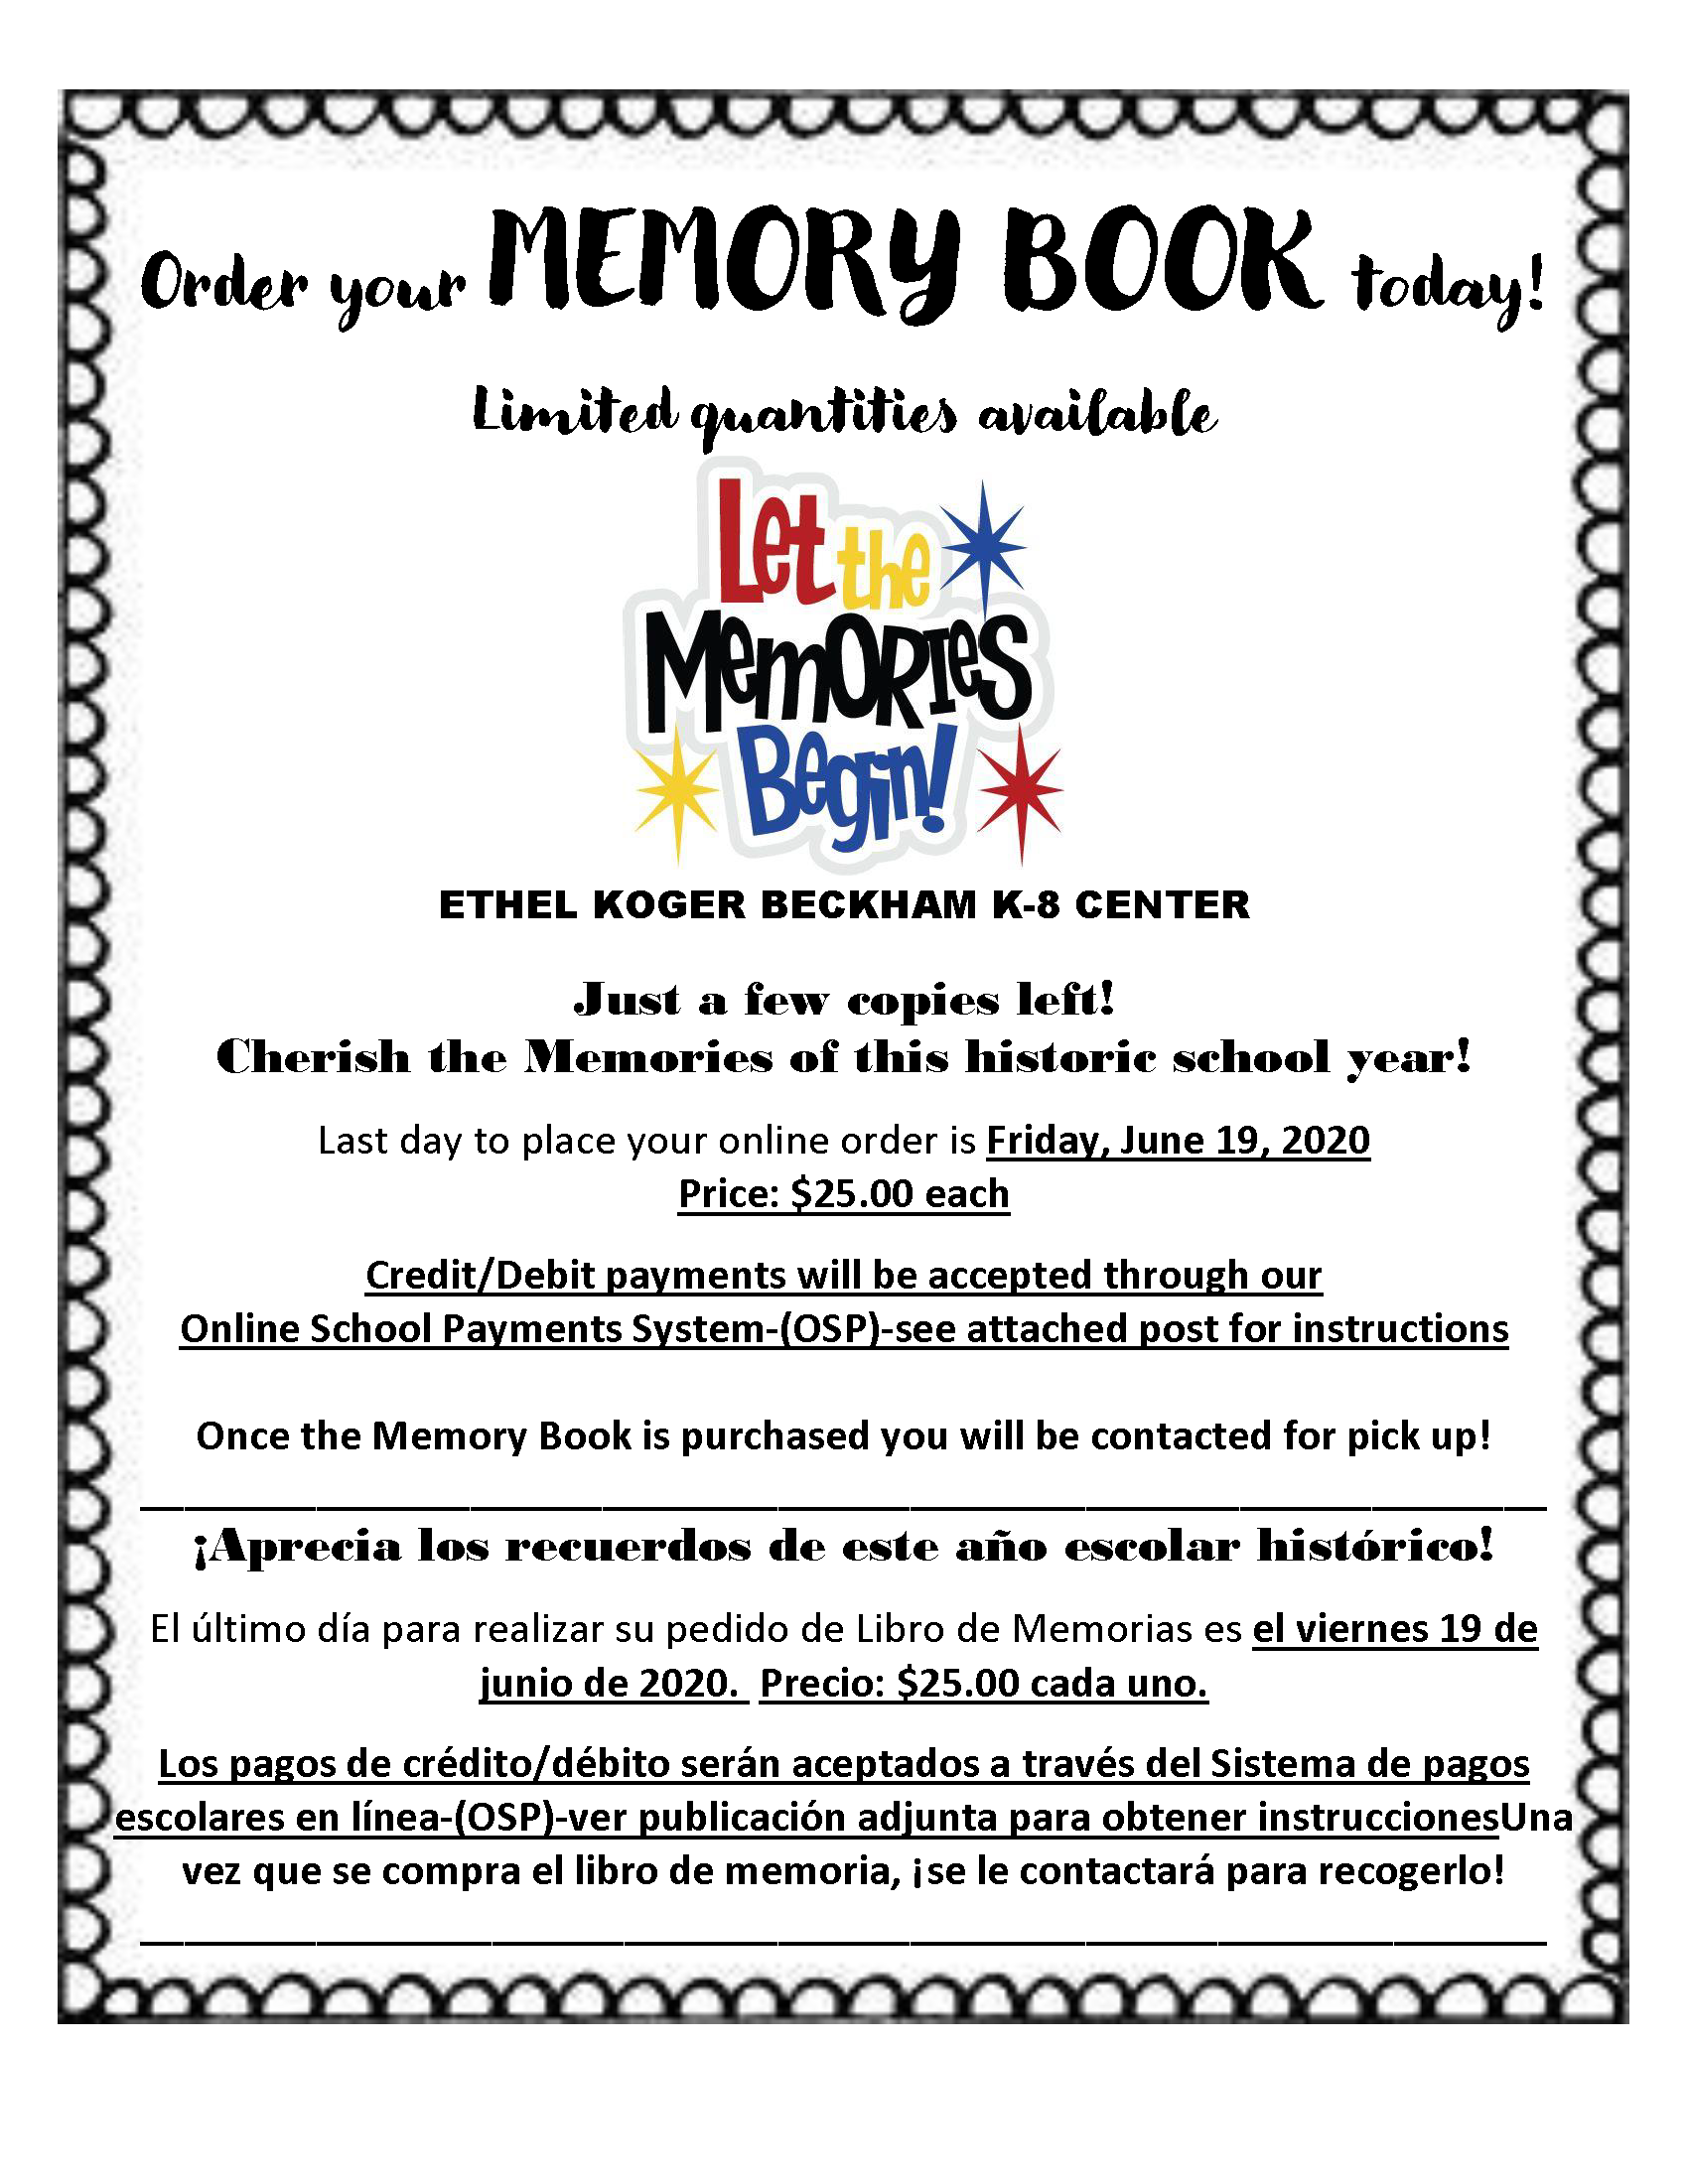 yearbook purchase flyer